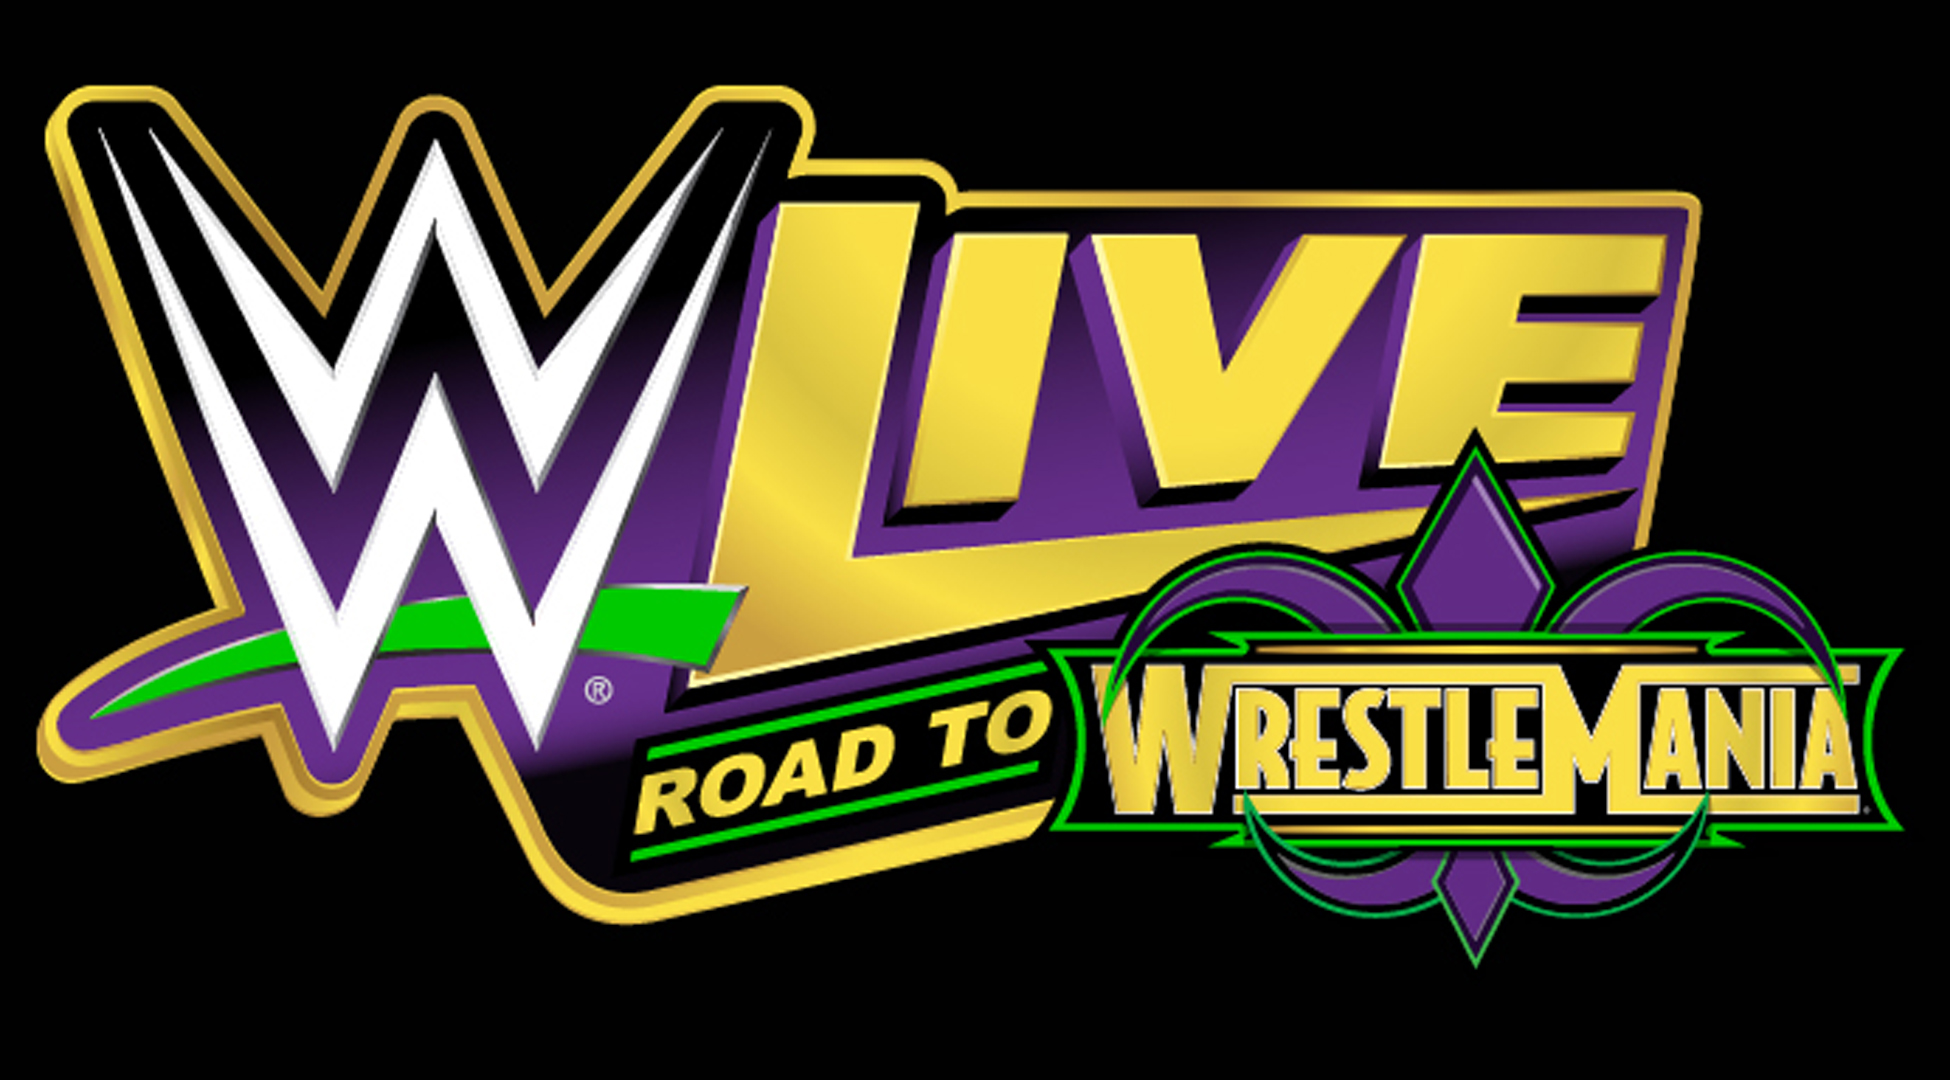 WWE Live! Road to WrestleMania